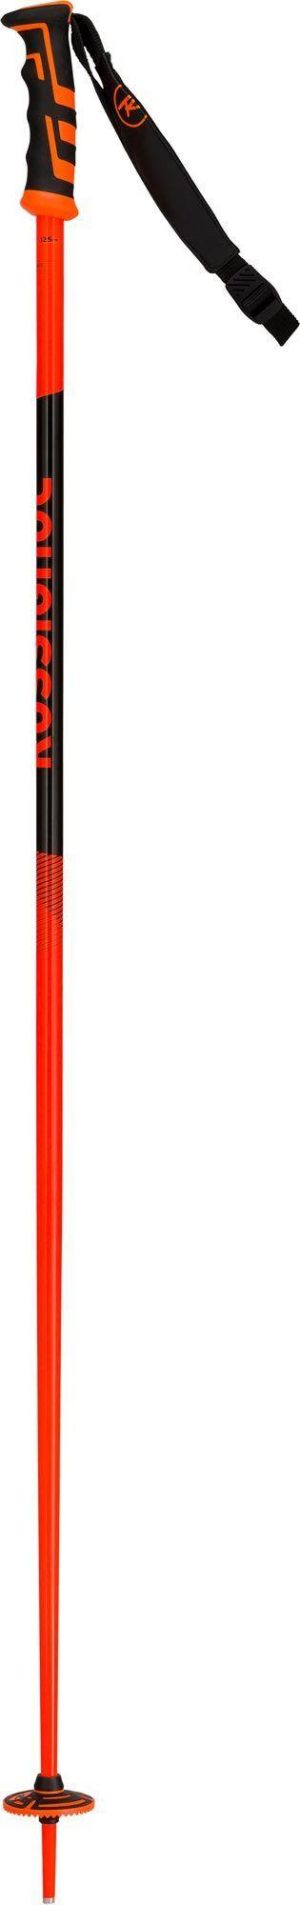 Rossignol Tactic Alu Safety Ski Poles